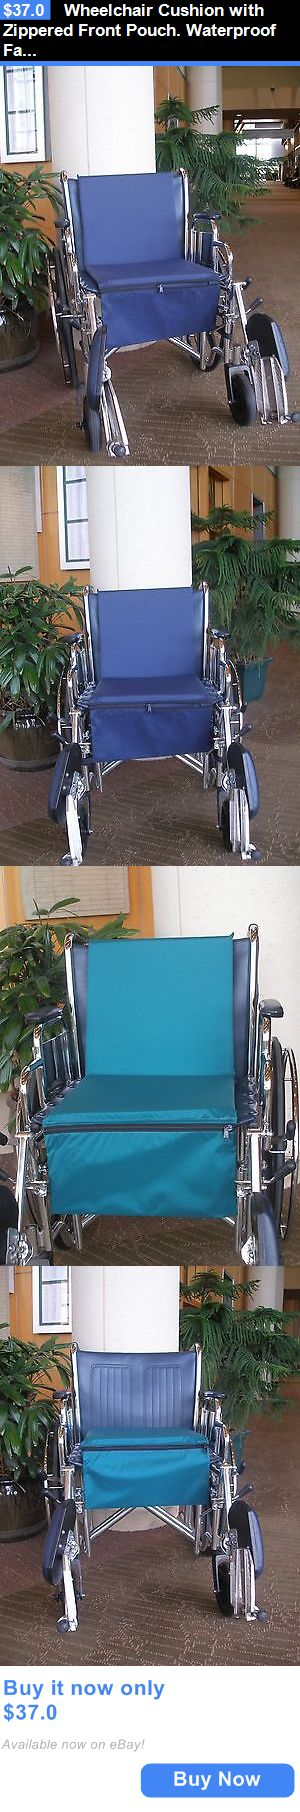 Wheelchairs: Wheelchair Cushion With Zippered Front Pouch. Waterproof Fabric. 2 Positions. BUY IT NOW ONLY: $37.0